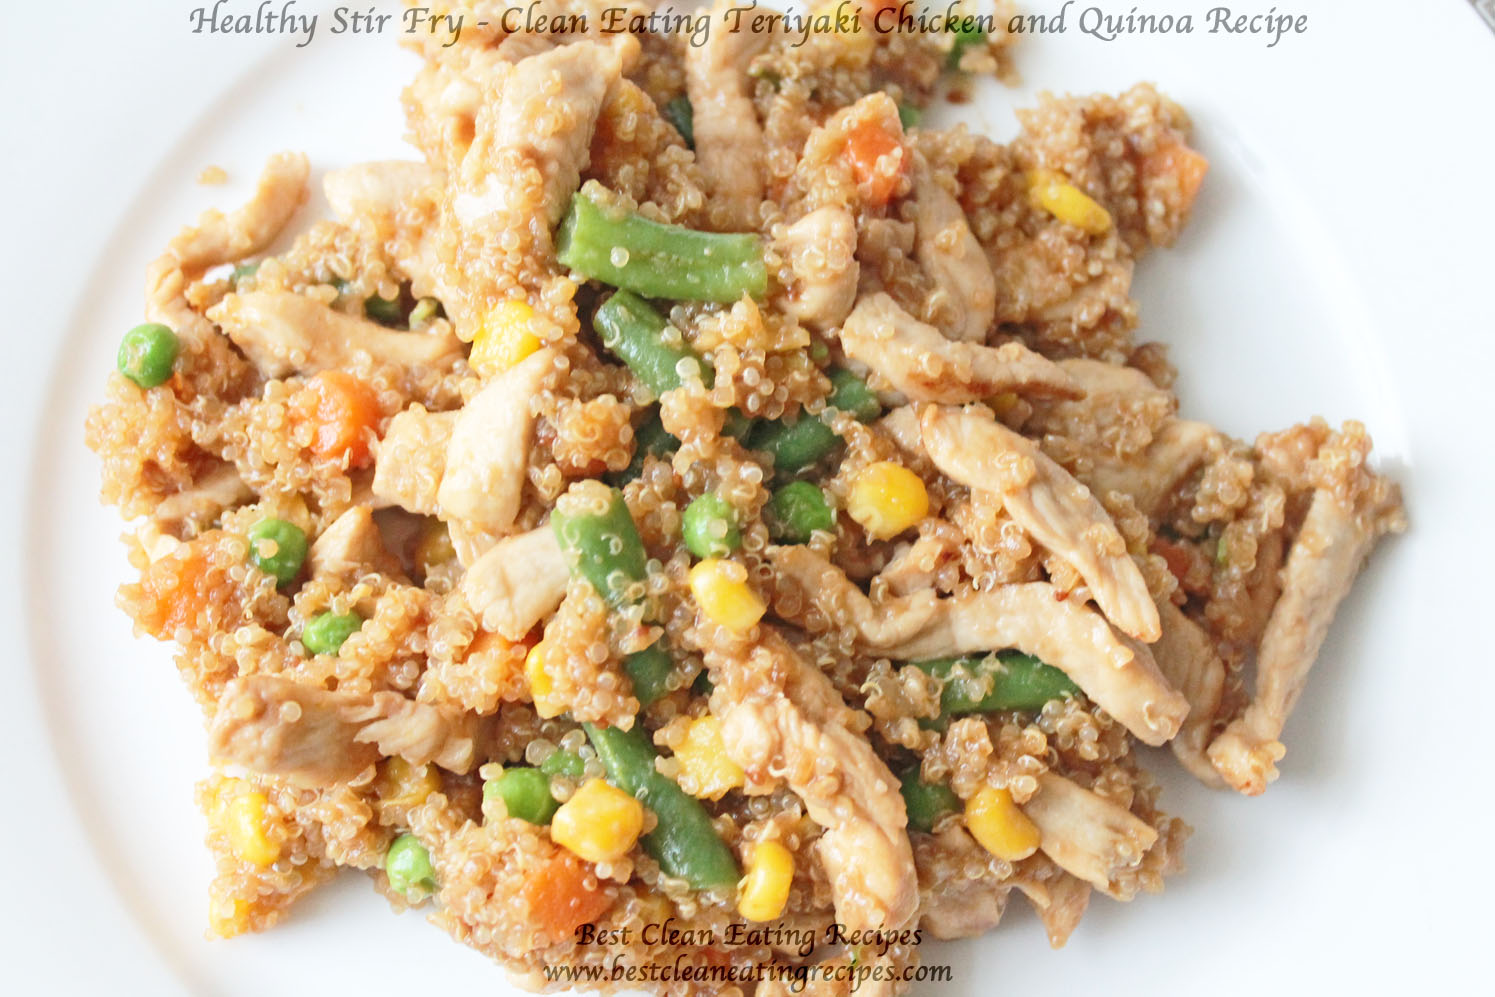 Healthy Stir Fry – Clean Eating Teriyaki Chicken and Quinoa Recipe